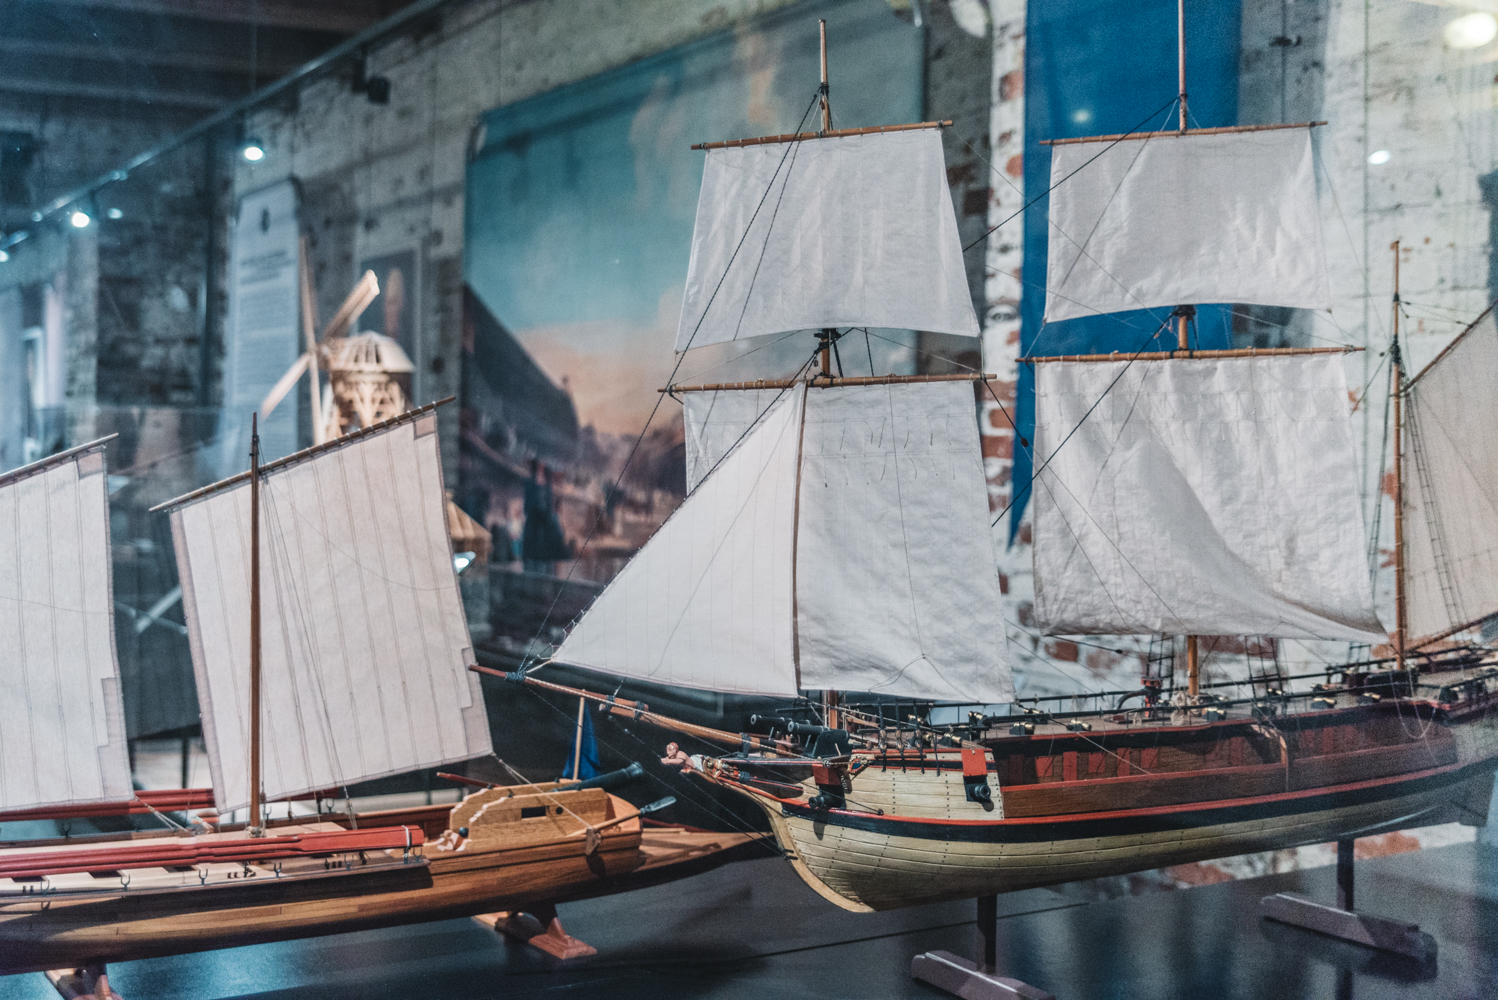 Miniature Ships at Suomenlinna